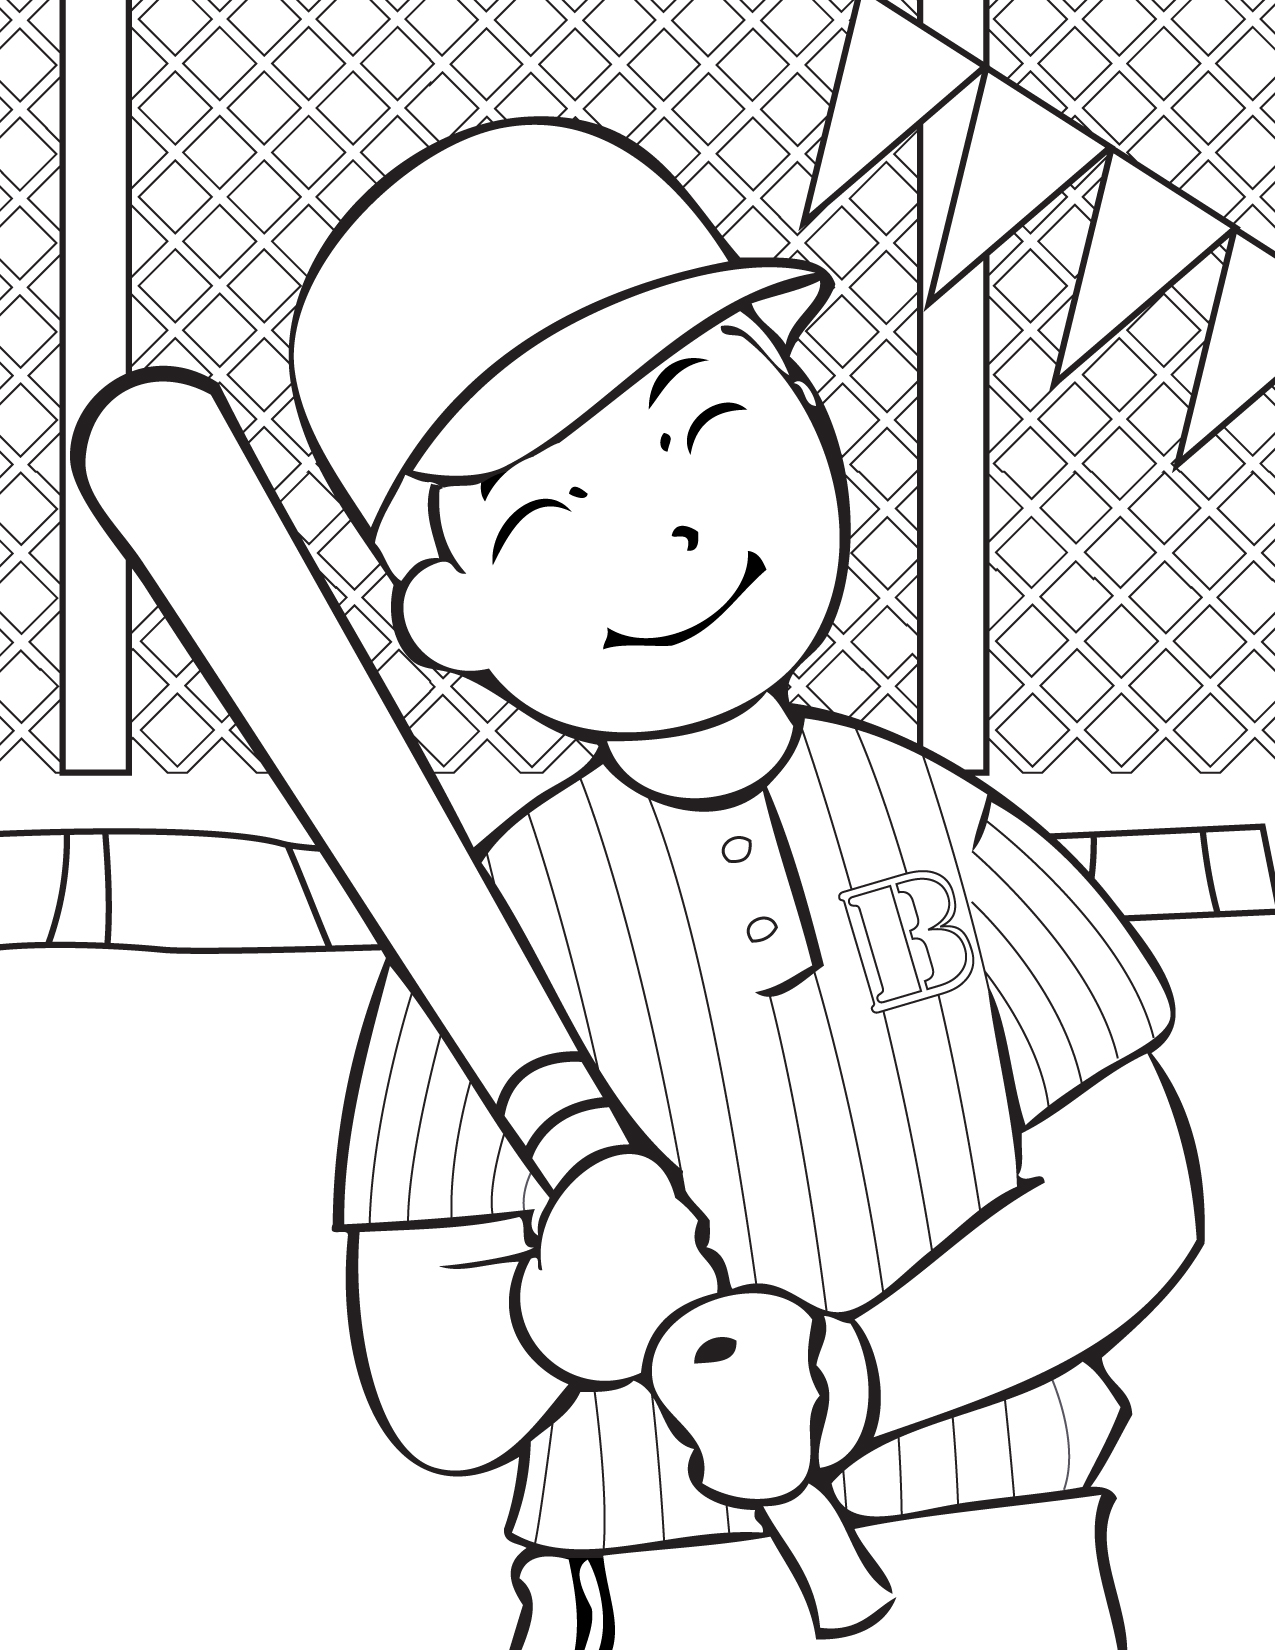 Free Printable Sports Coloring Pages For Kids | 1650x1275